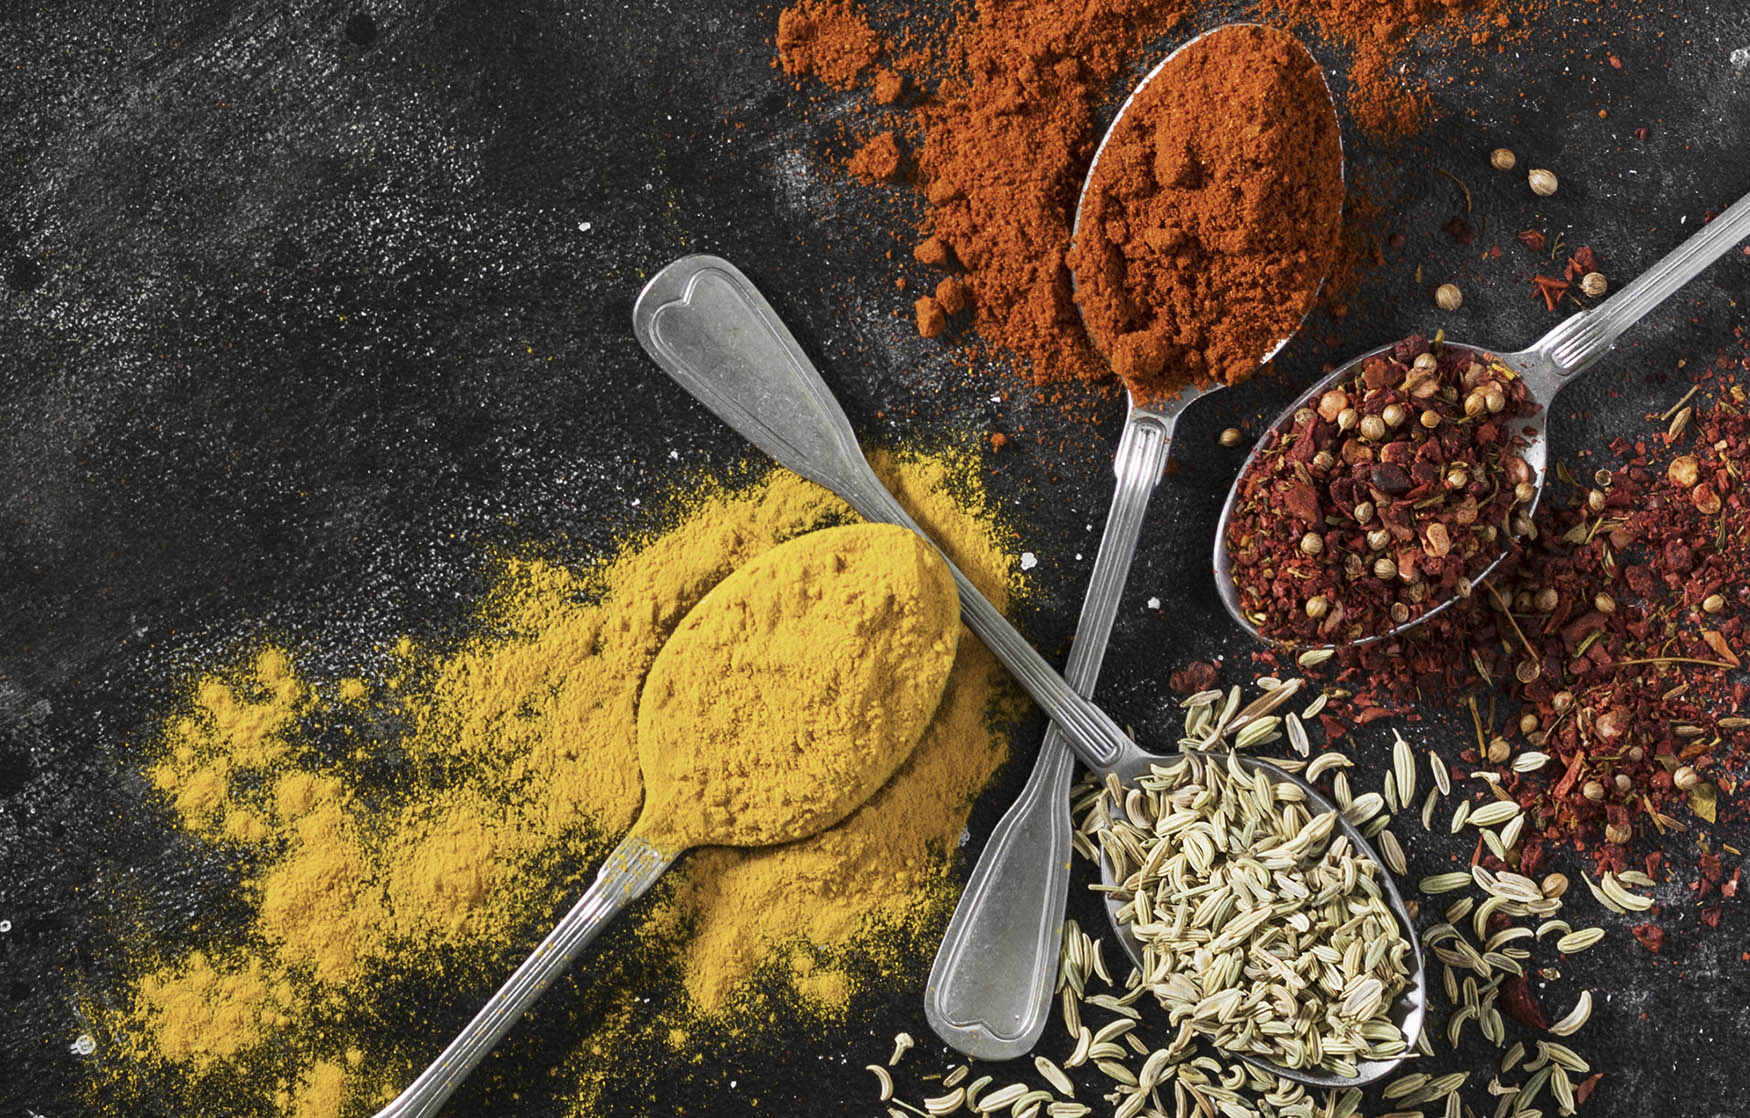 If you have any of these spices in your pantry, there's a big recall so throw them out